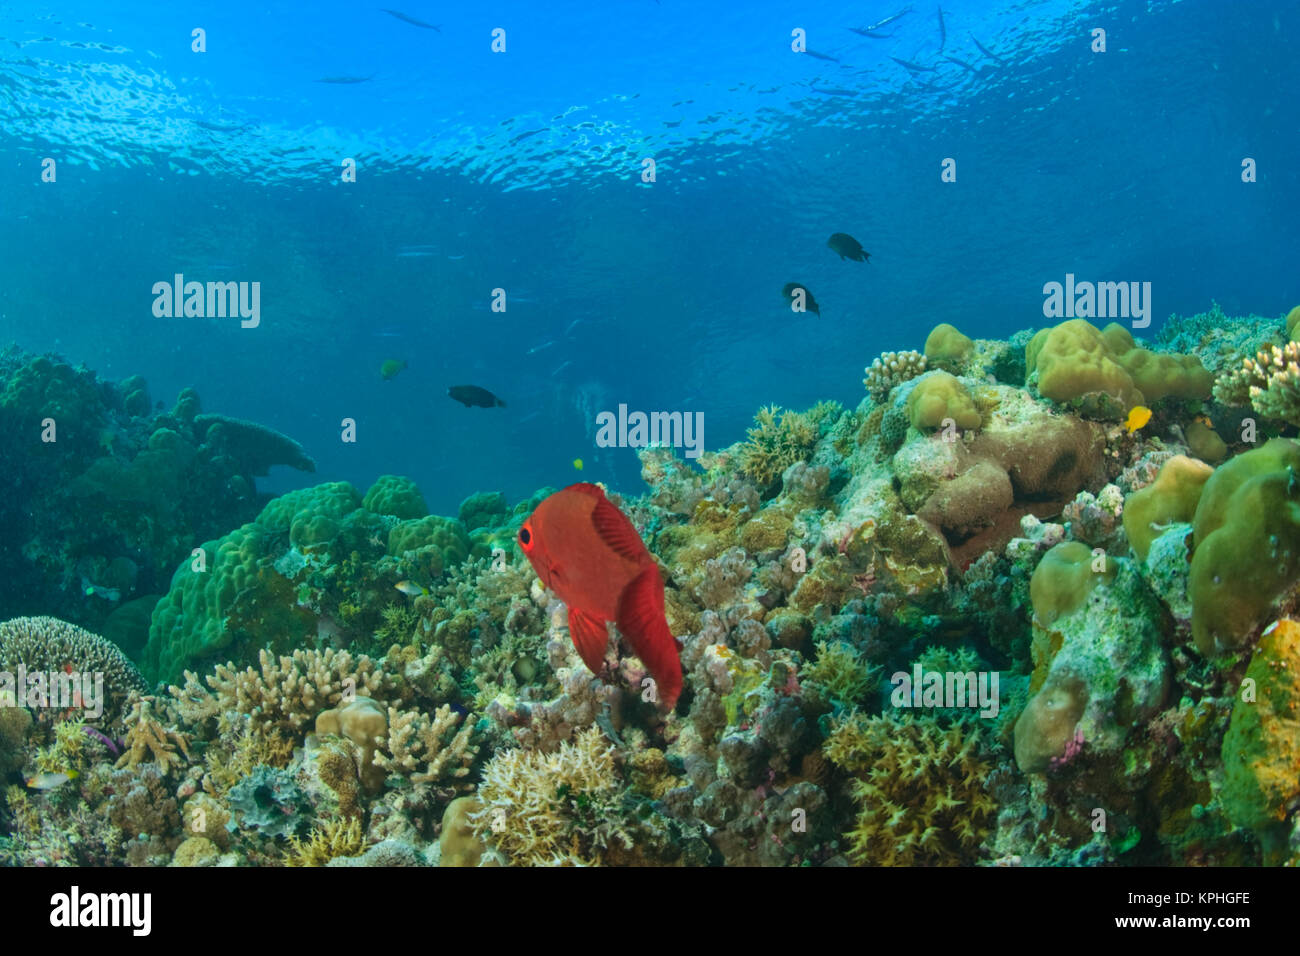 Essay on Coral Reefs